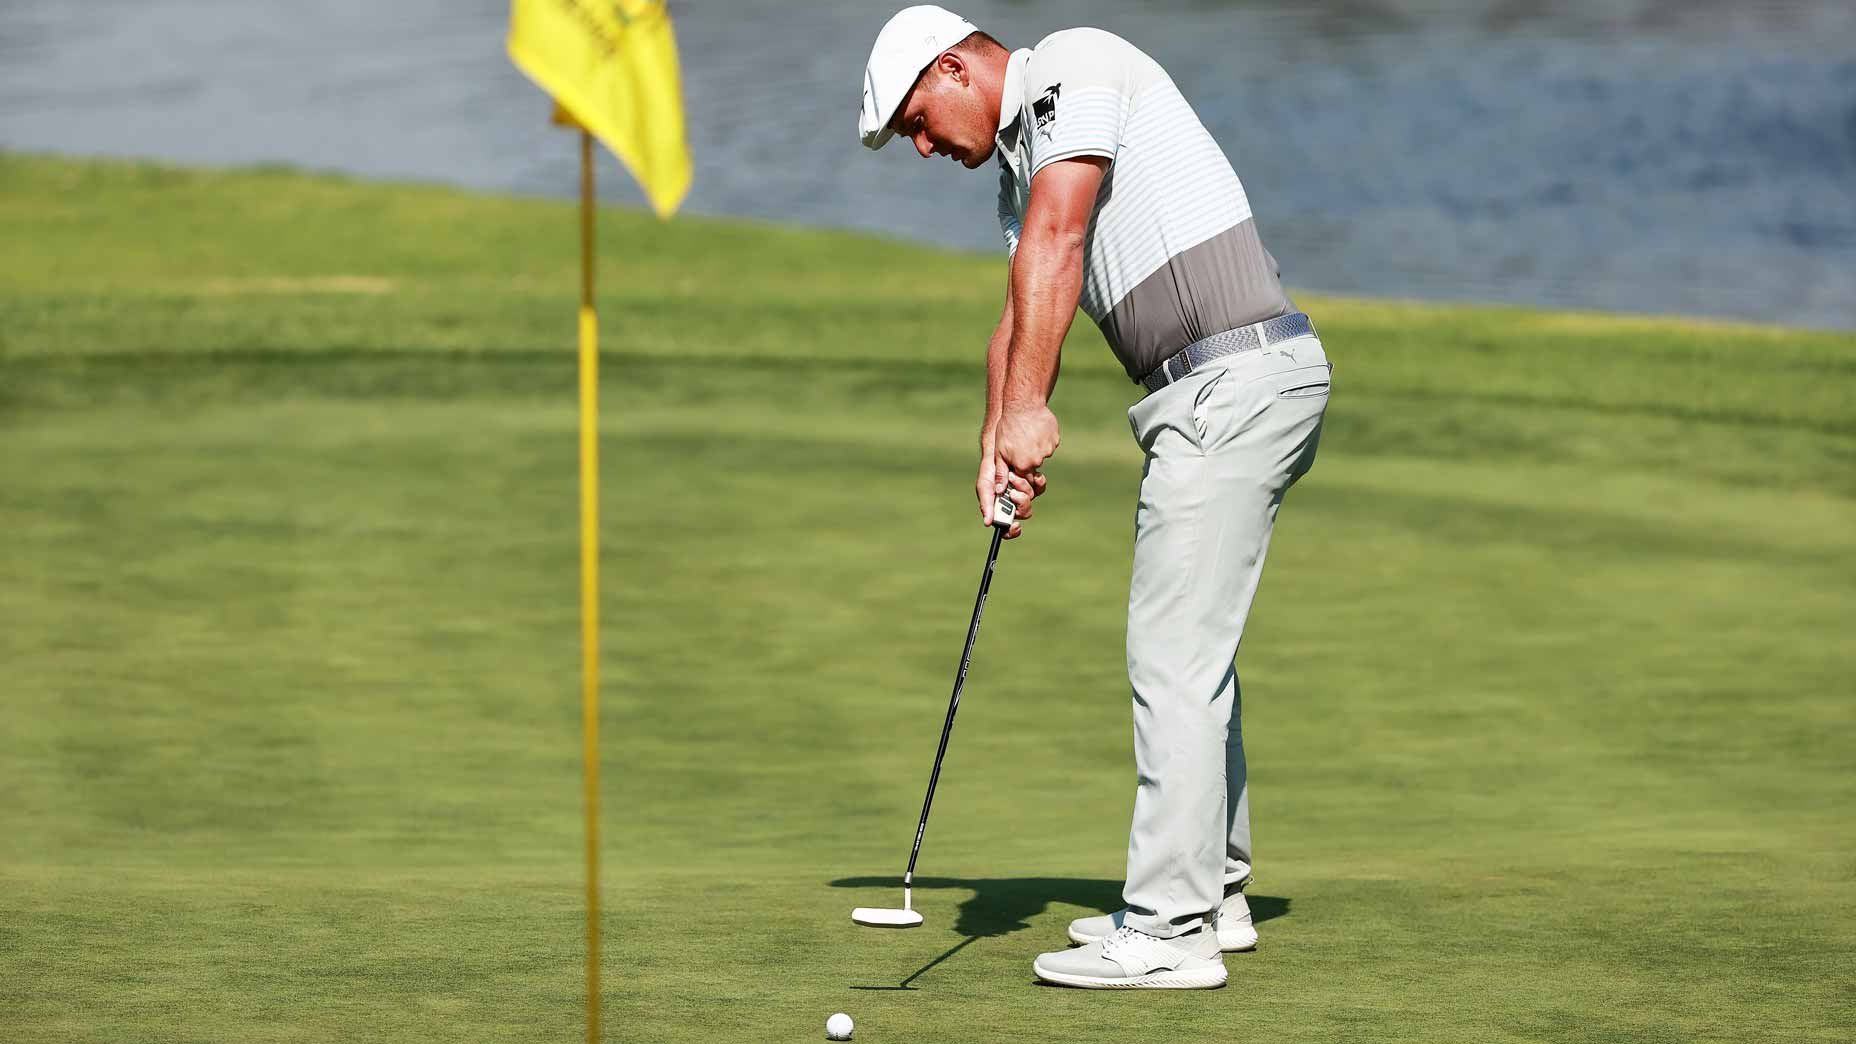 Is Bryson DeChambeau's Putter Technology A Game Changer?